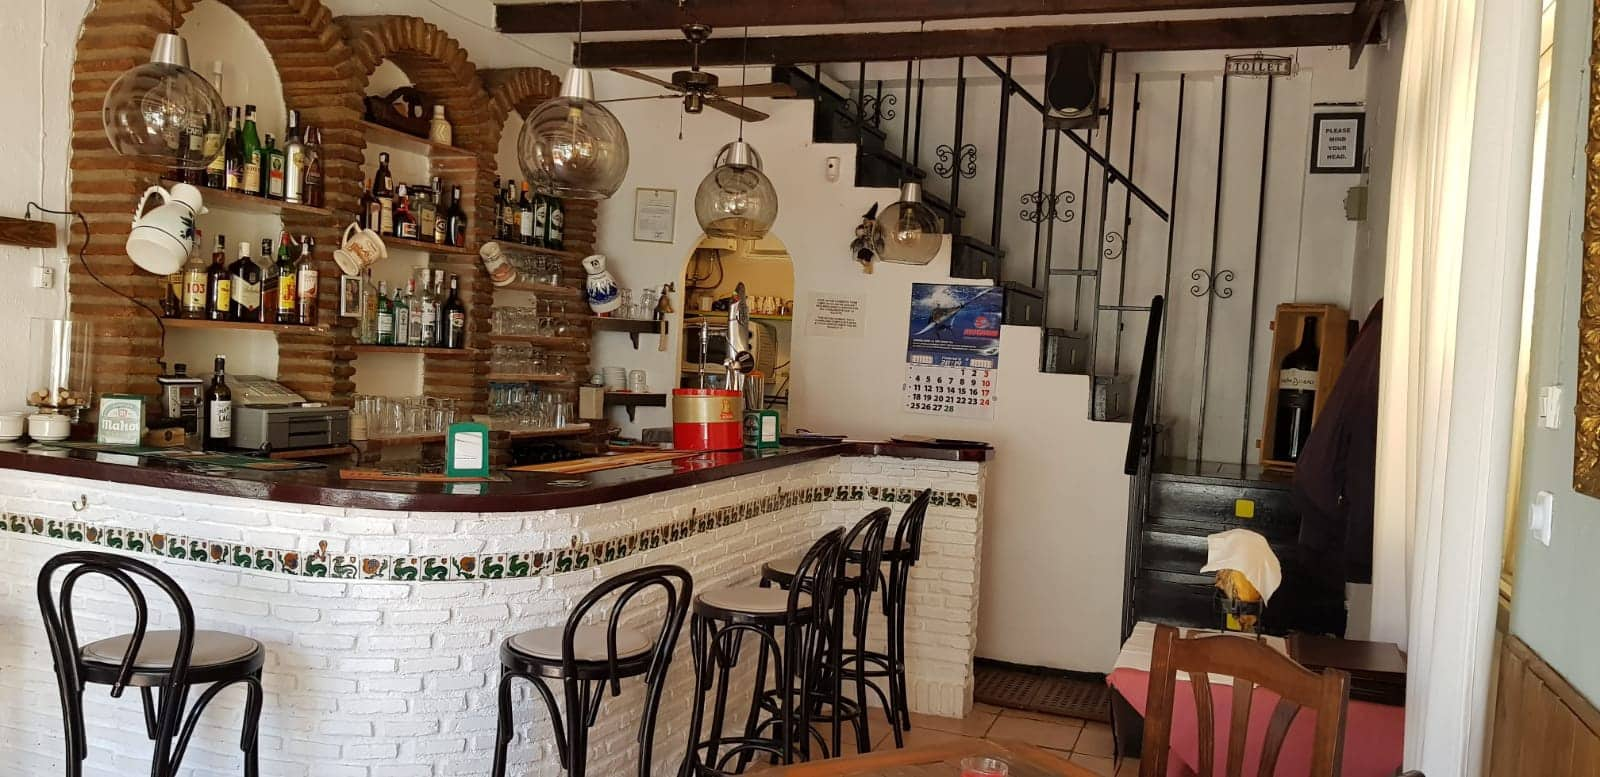 Commercial for sale in Torremolinos with pool garage - € 340,000 (Ref: 349234)